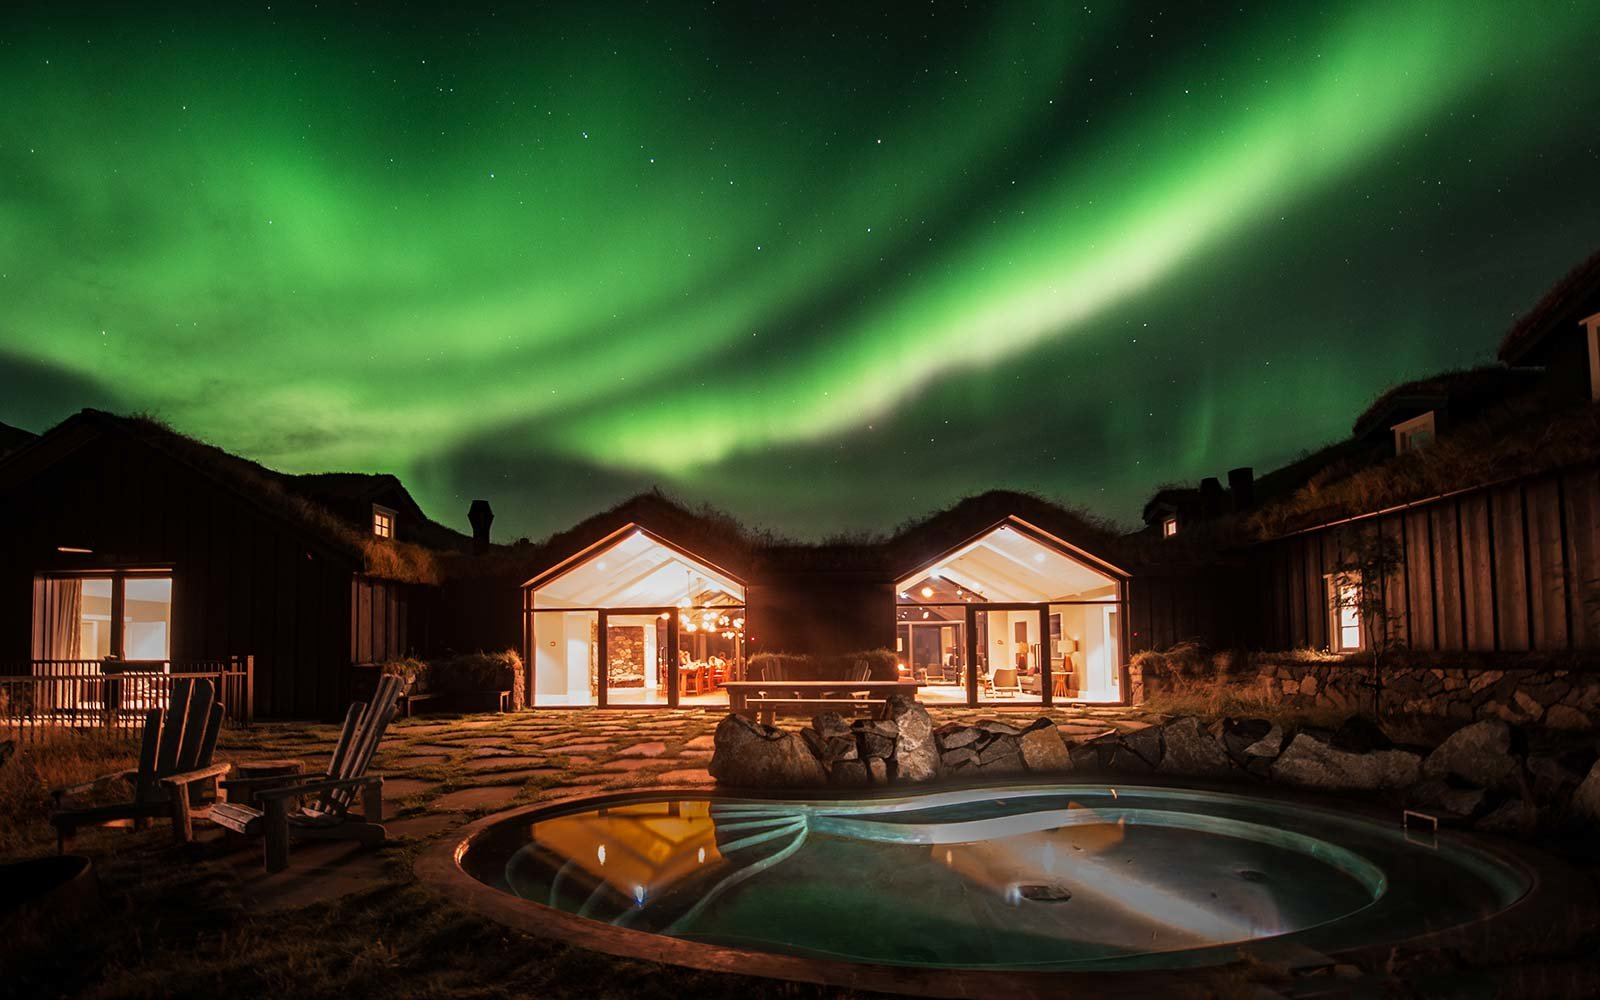 Take a Hot Bath Under the Northern Lights at This Remote Icelandic Hotel